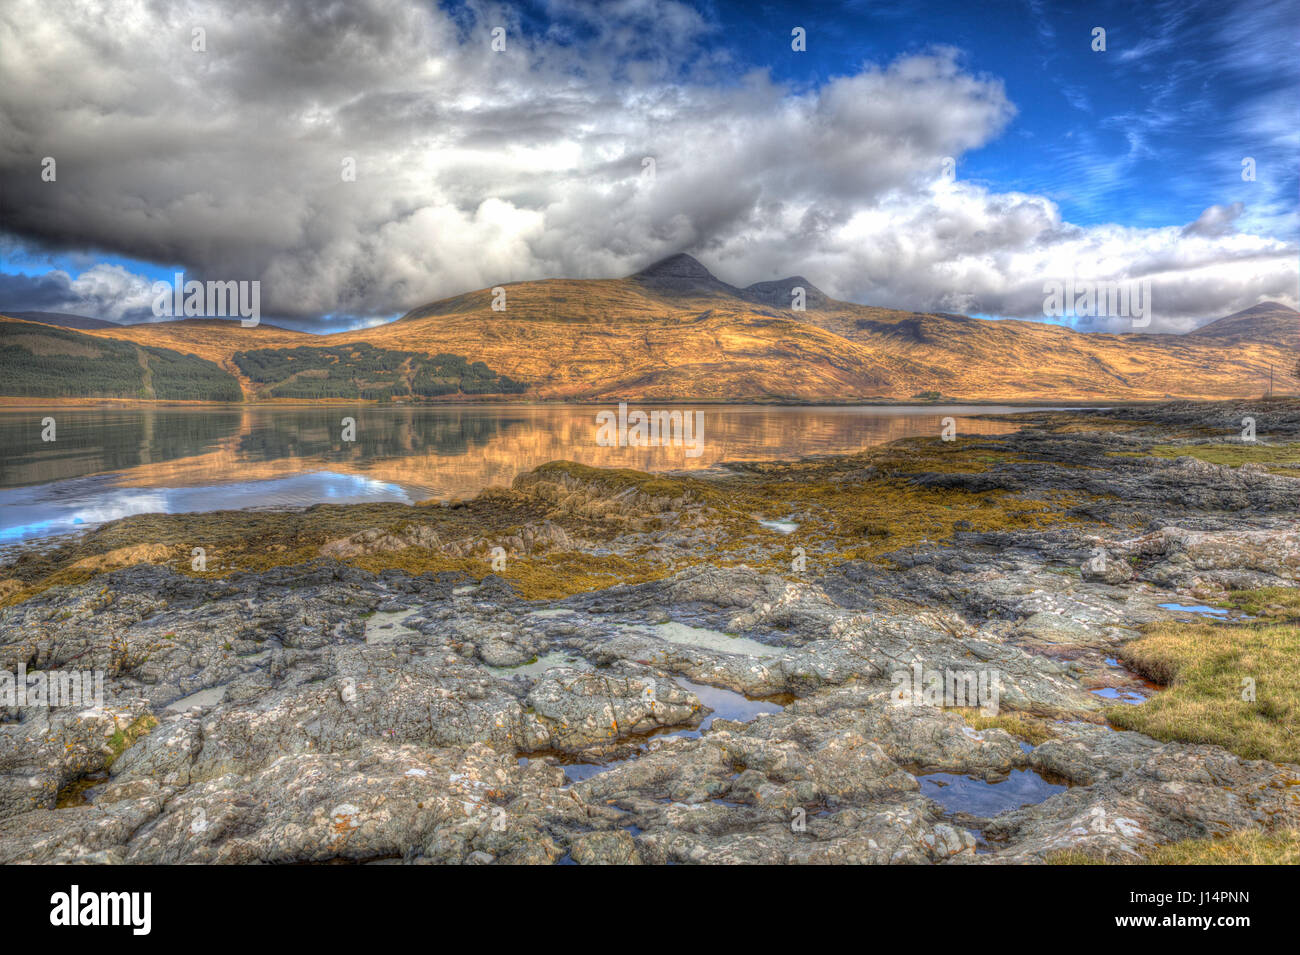 Isle of Mull Scotland UK beautiful Loch Scridain with view to Ben More and Glen More mountains on calm spring day - Stock Image